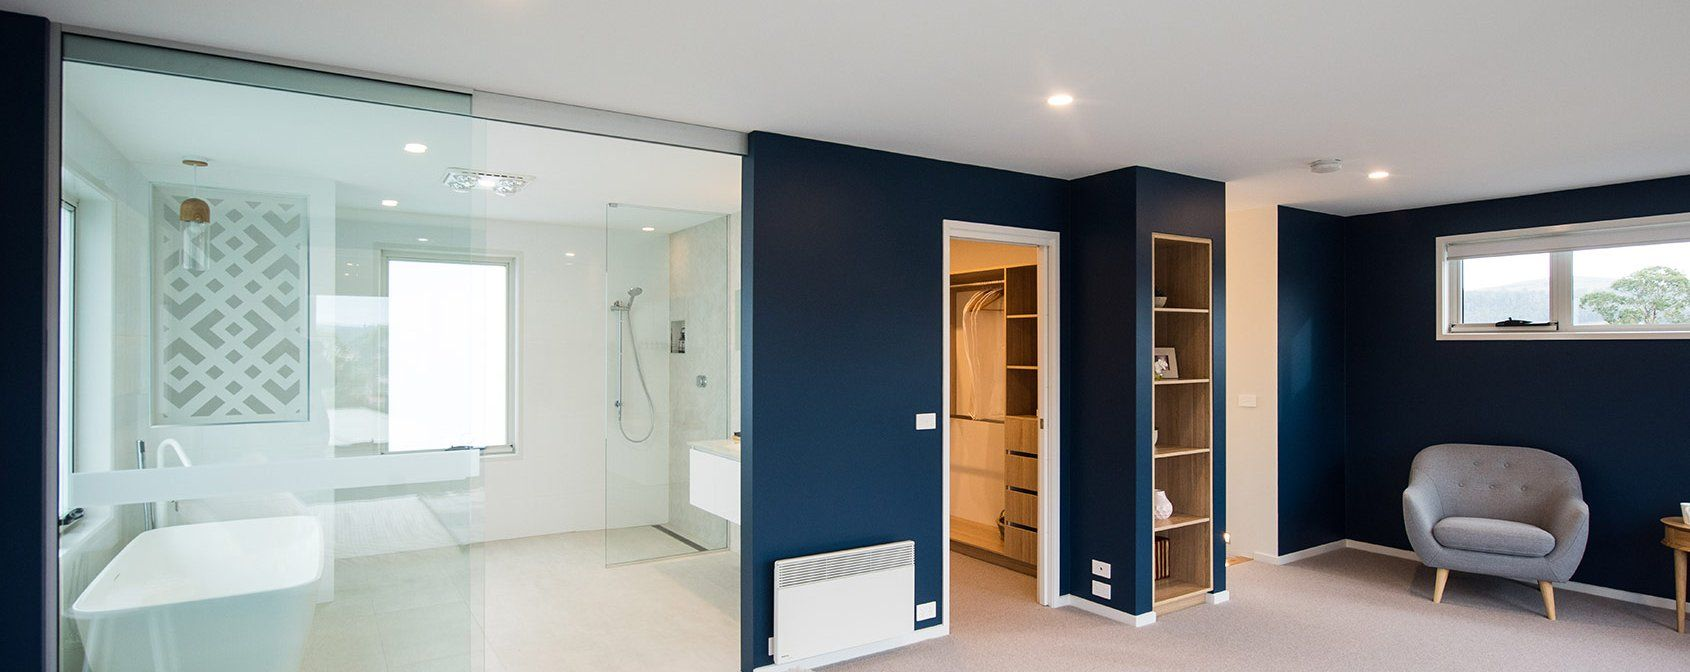 A master bedroom worthy of Hollywood - Sapphire Home Design - On display at Kingston TAS & A master bedroom worthy of Hollywood - Sapphire Home Design - On ...